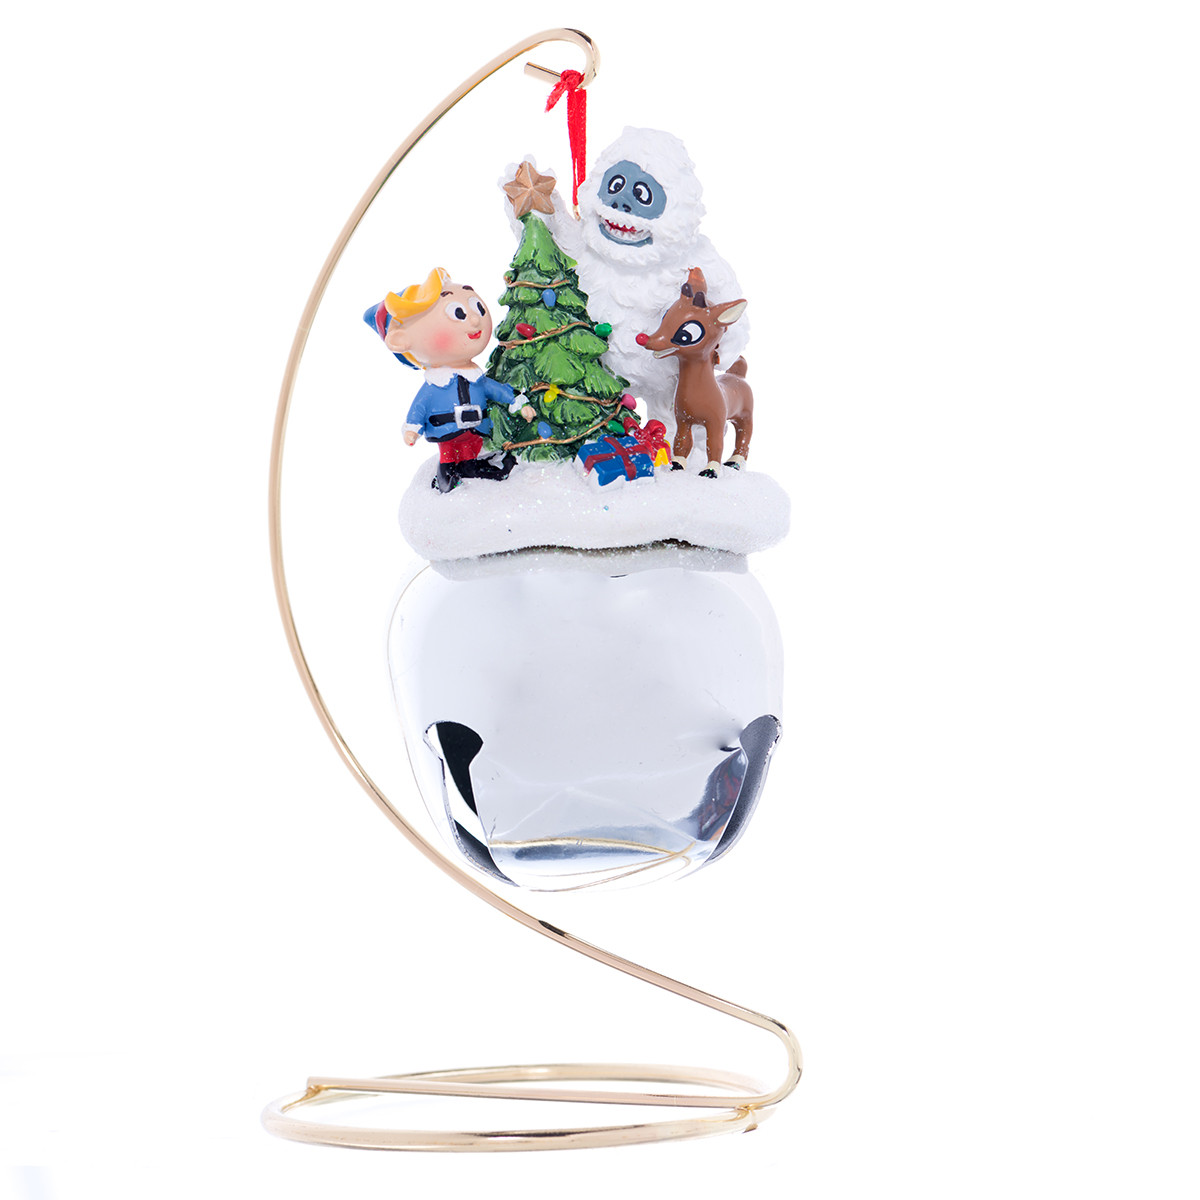 Rudolph friends jumbo jingle bell ornament stand